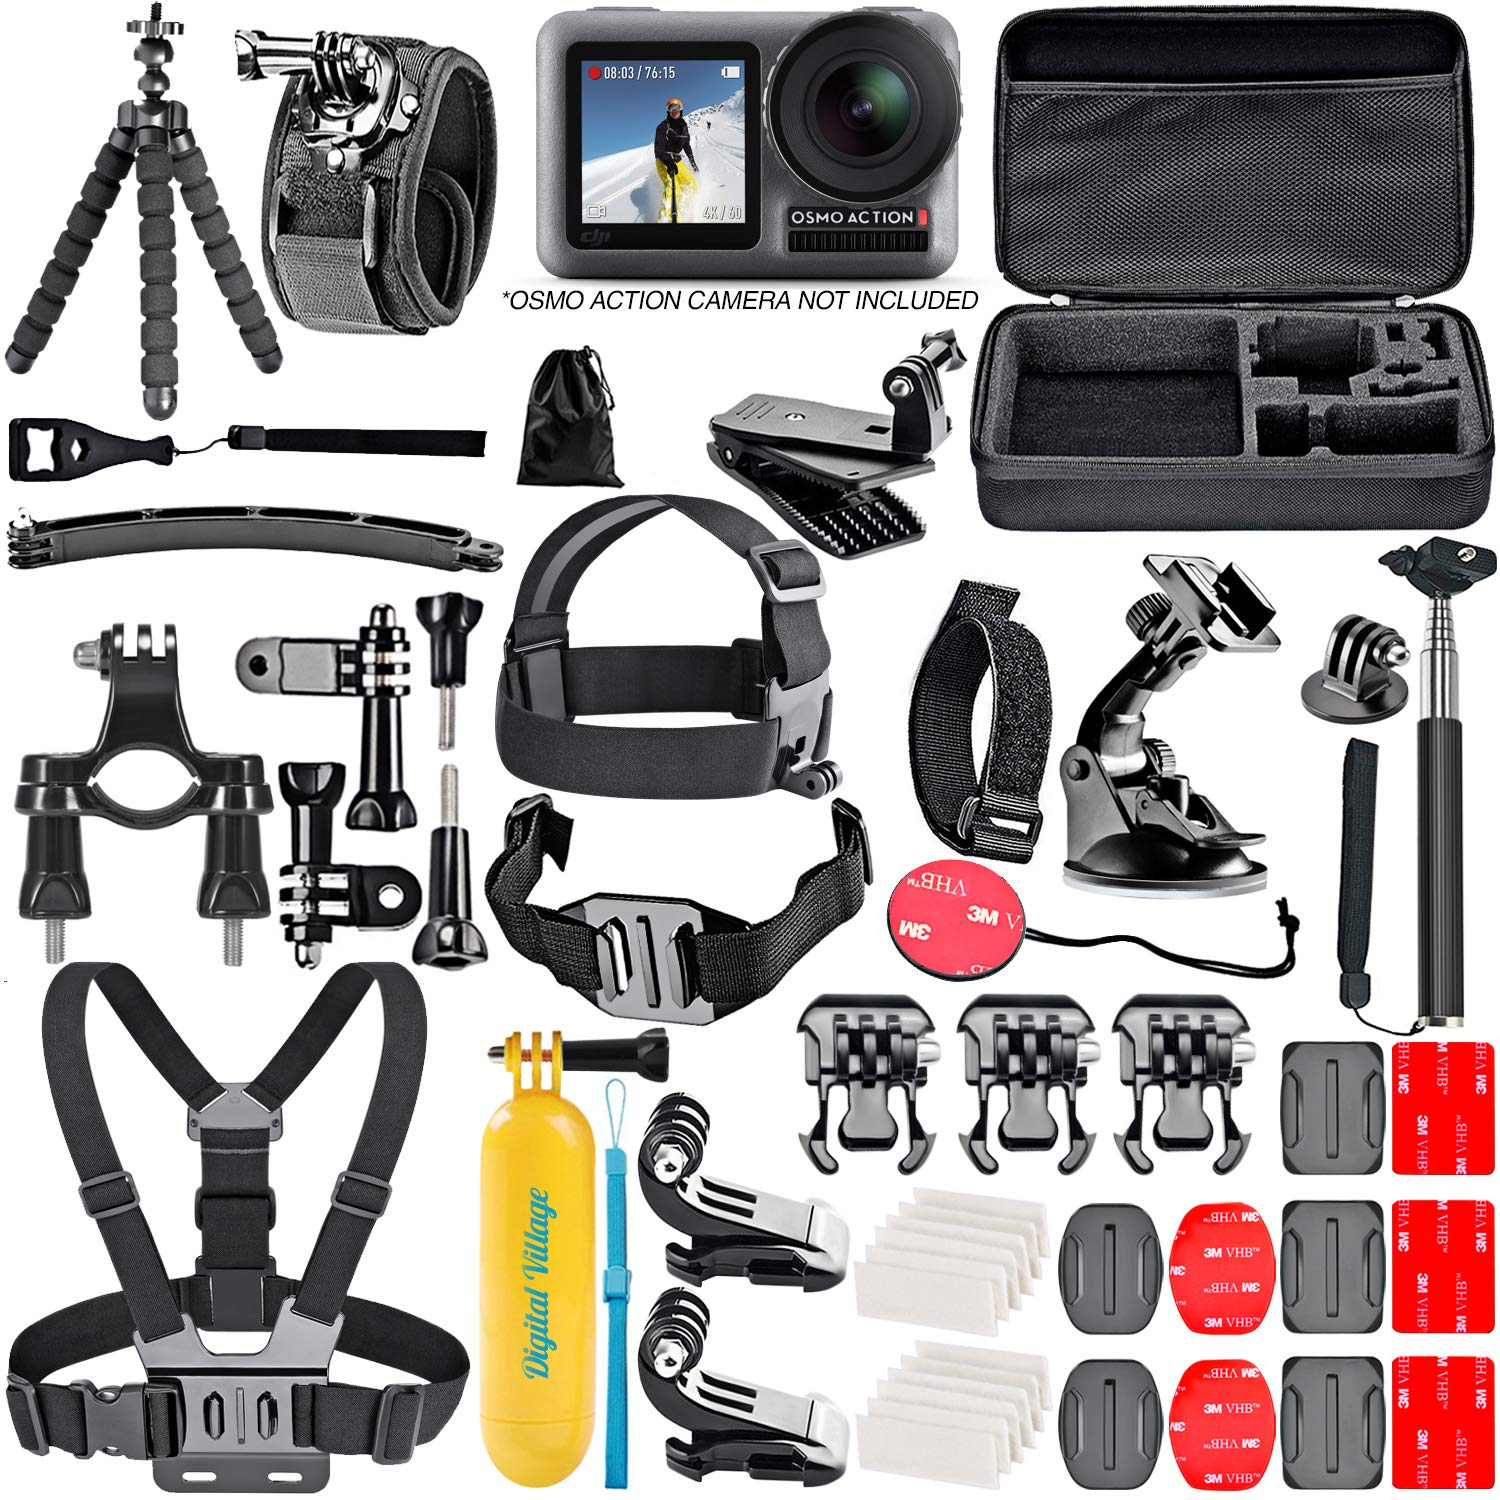 50 Piece Accessory Kit for DJI Osmo Action 4K Camera Action-Cam Bundle by Shutter Stop